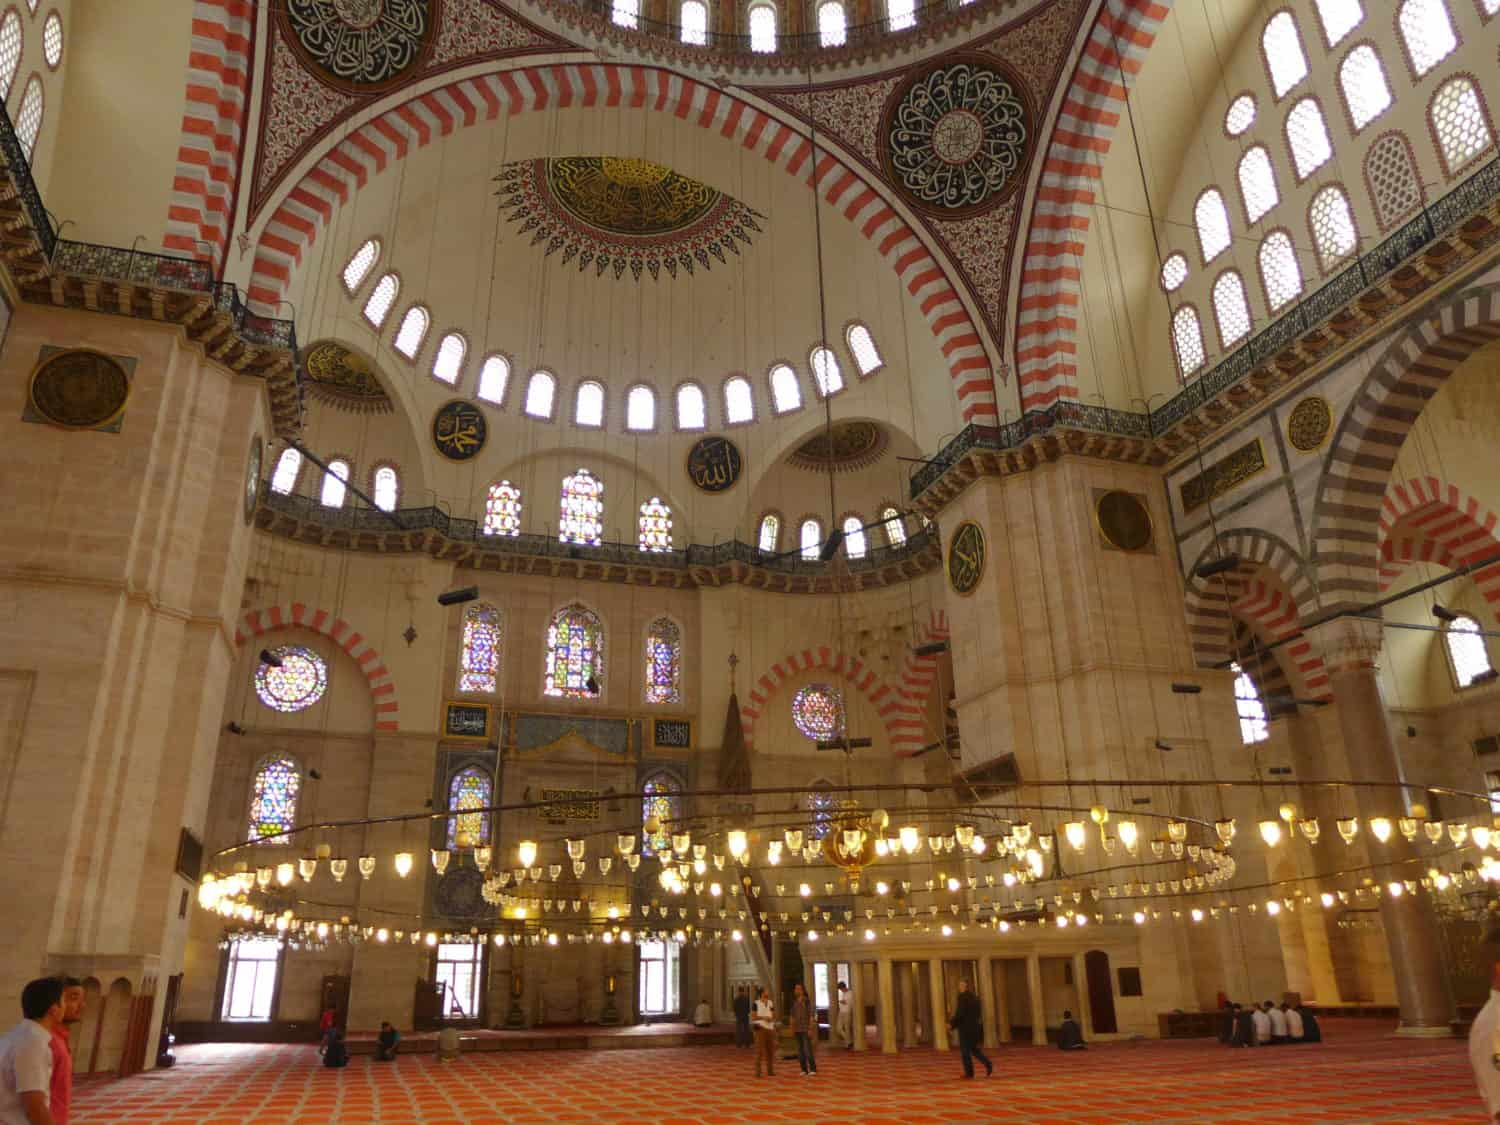 Planning a week or 10-day Turkey itinerary - Istanbul deserves a couple days if you've never been!